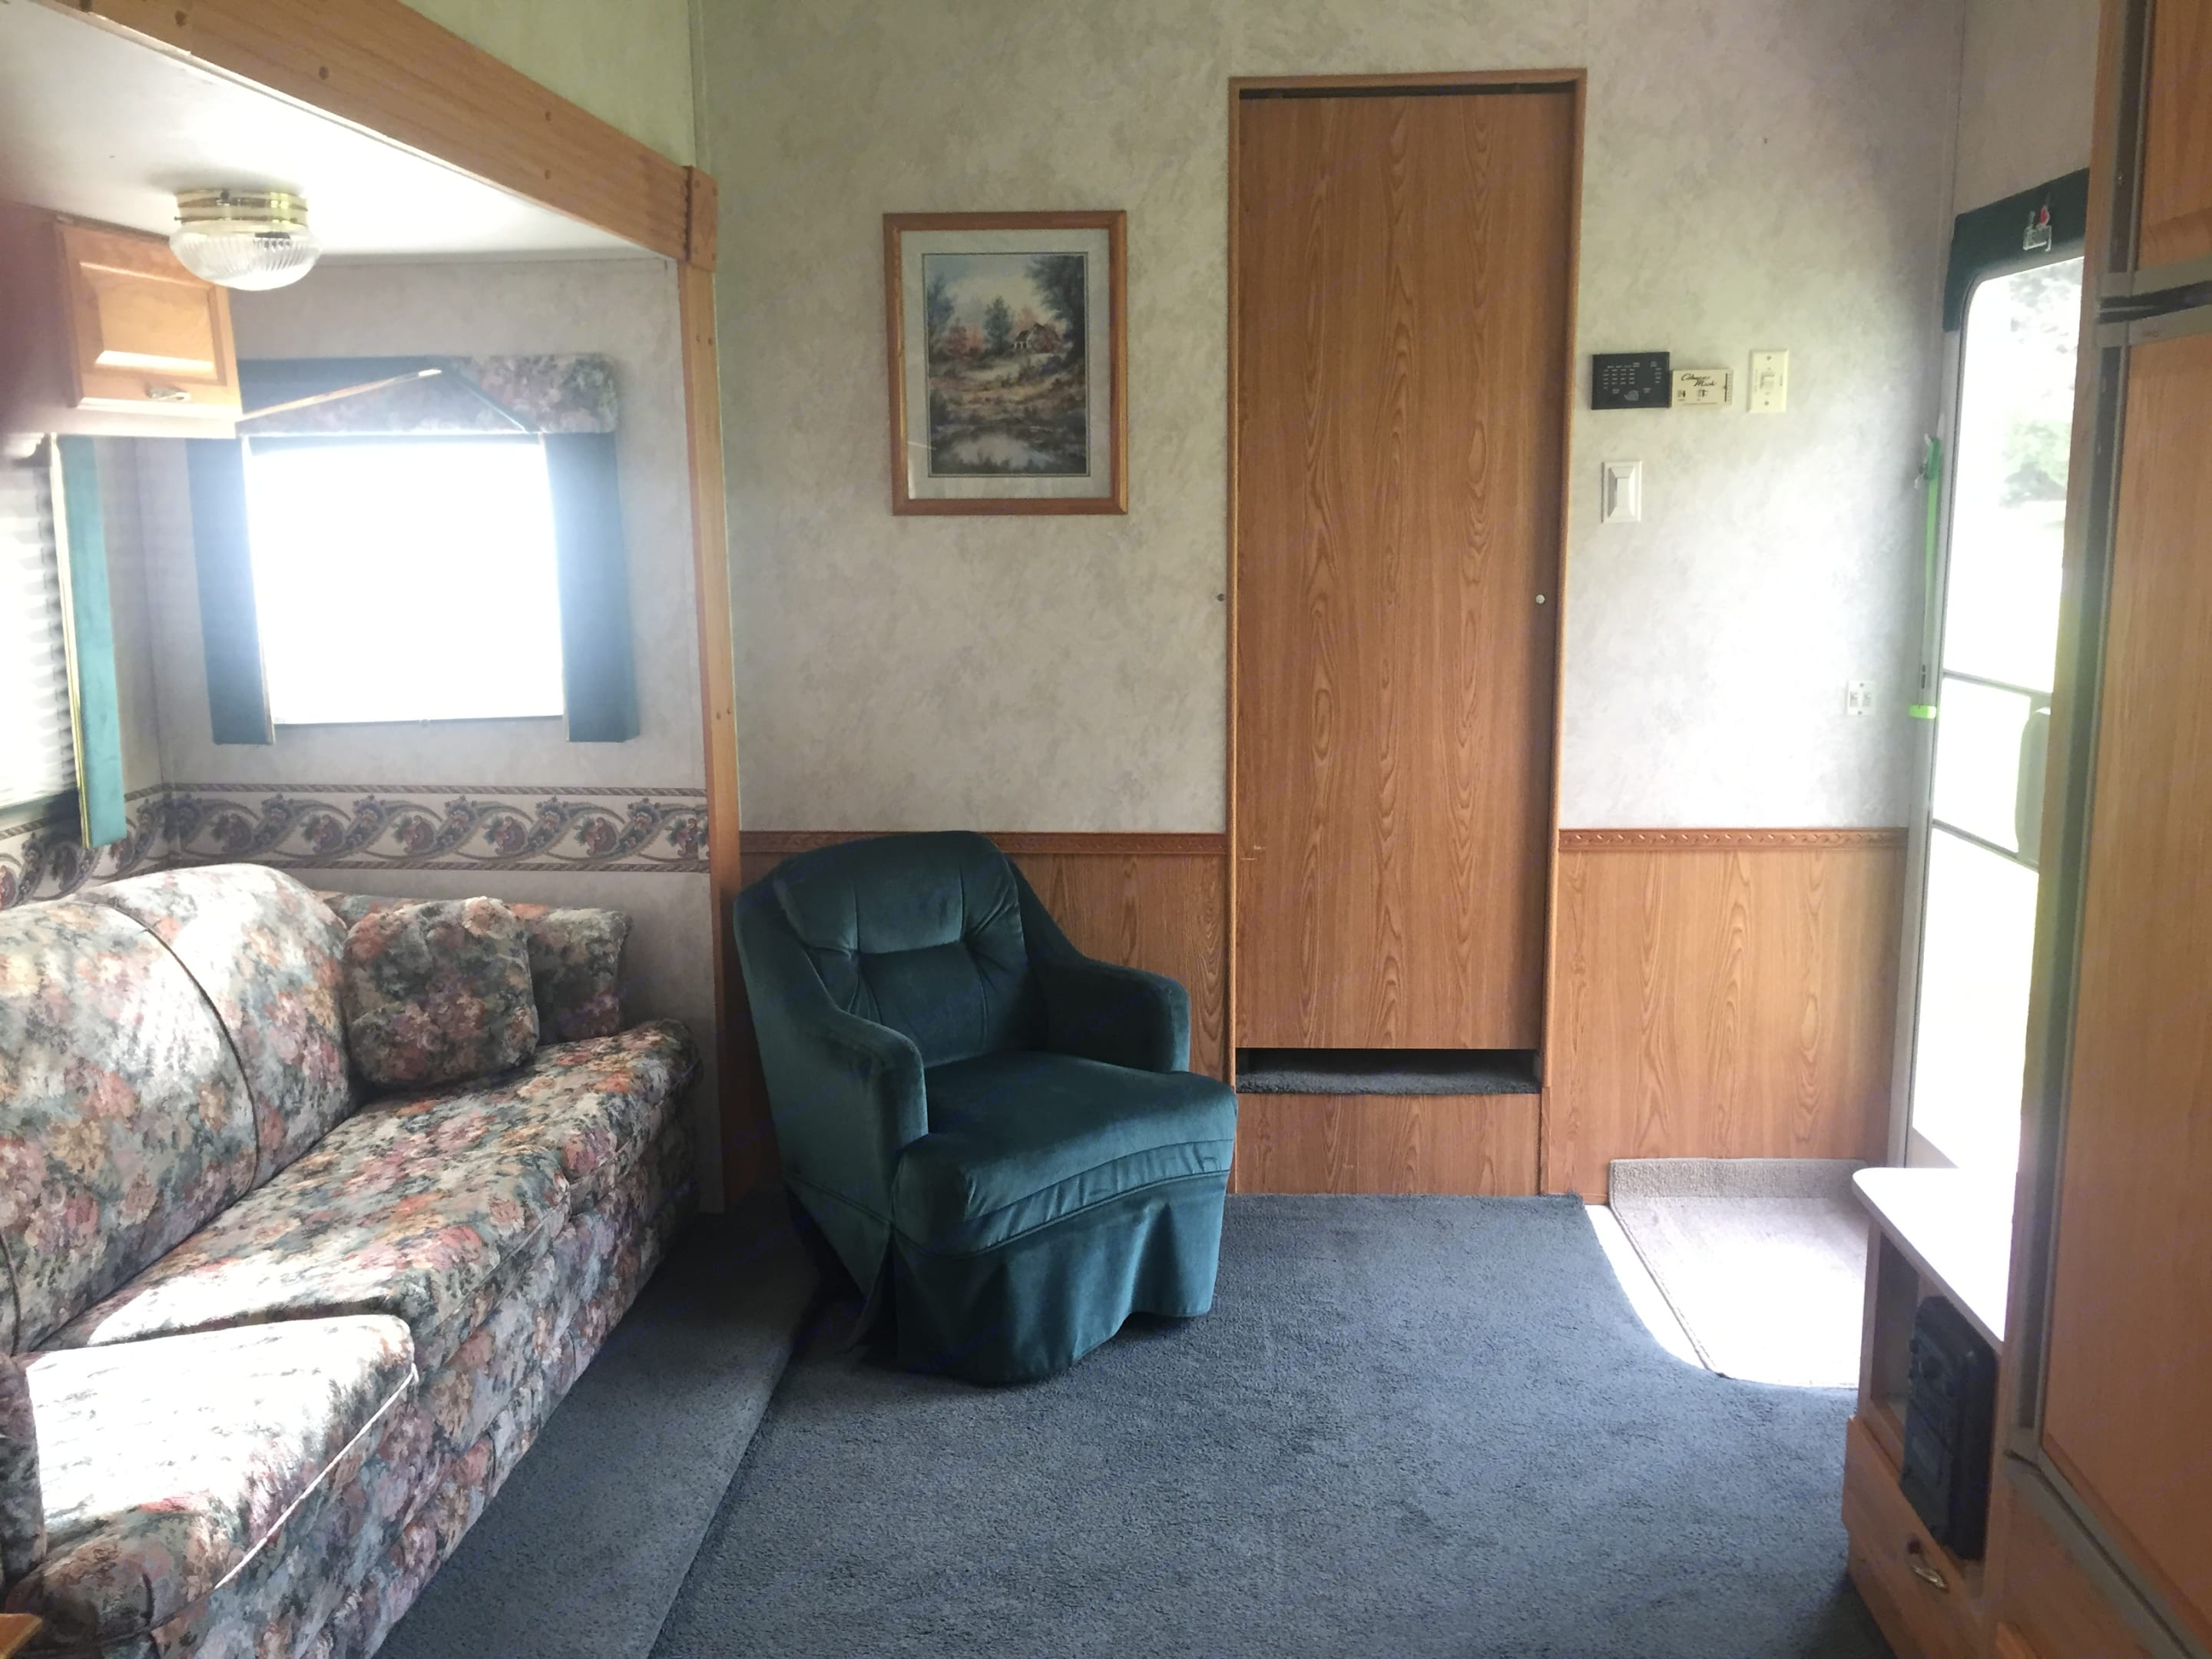 Living room with pull out bed in couch.. Gulf Stream Gulfstream 1998